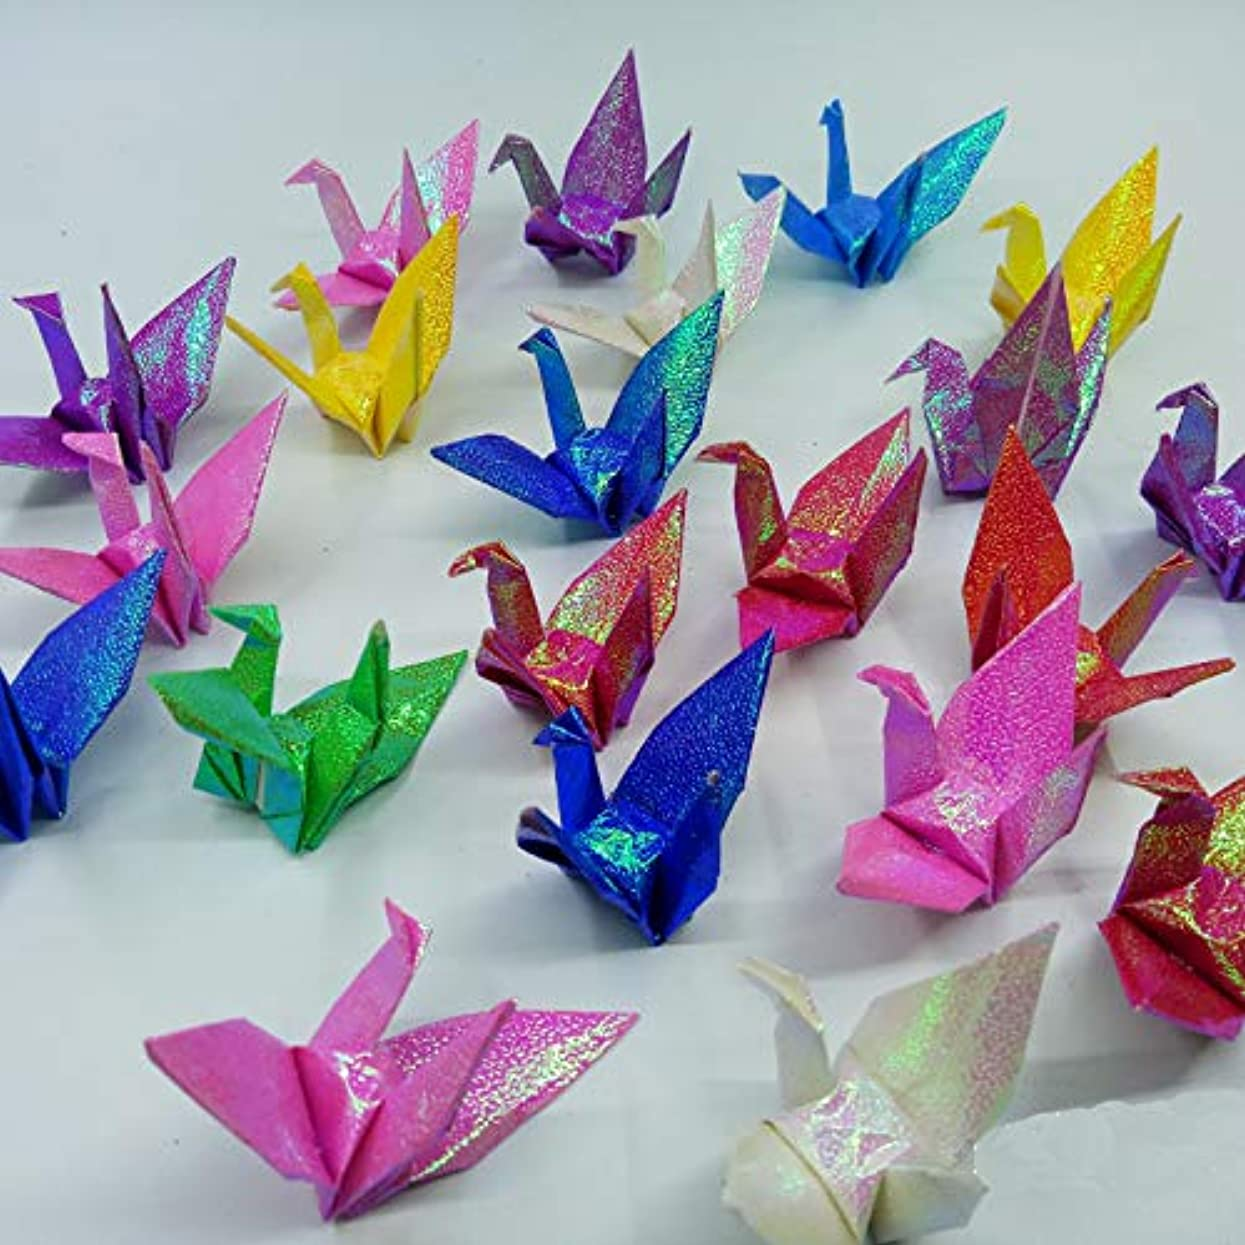 Morndew 100 PCS Glitter Origami Paper Cranes Mixed Colors, Folded DIY Paper Cranes for Baby Shower Wedding Party Birthday Party Children Party Backdrop Home Decoration i51086773124112